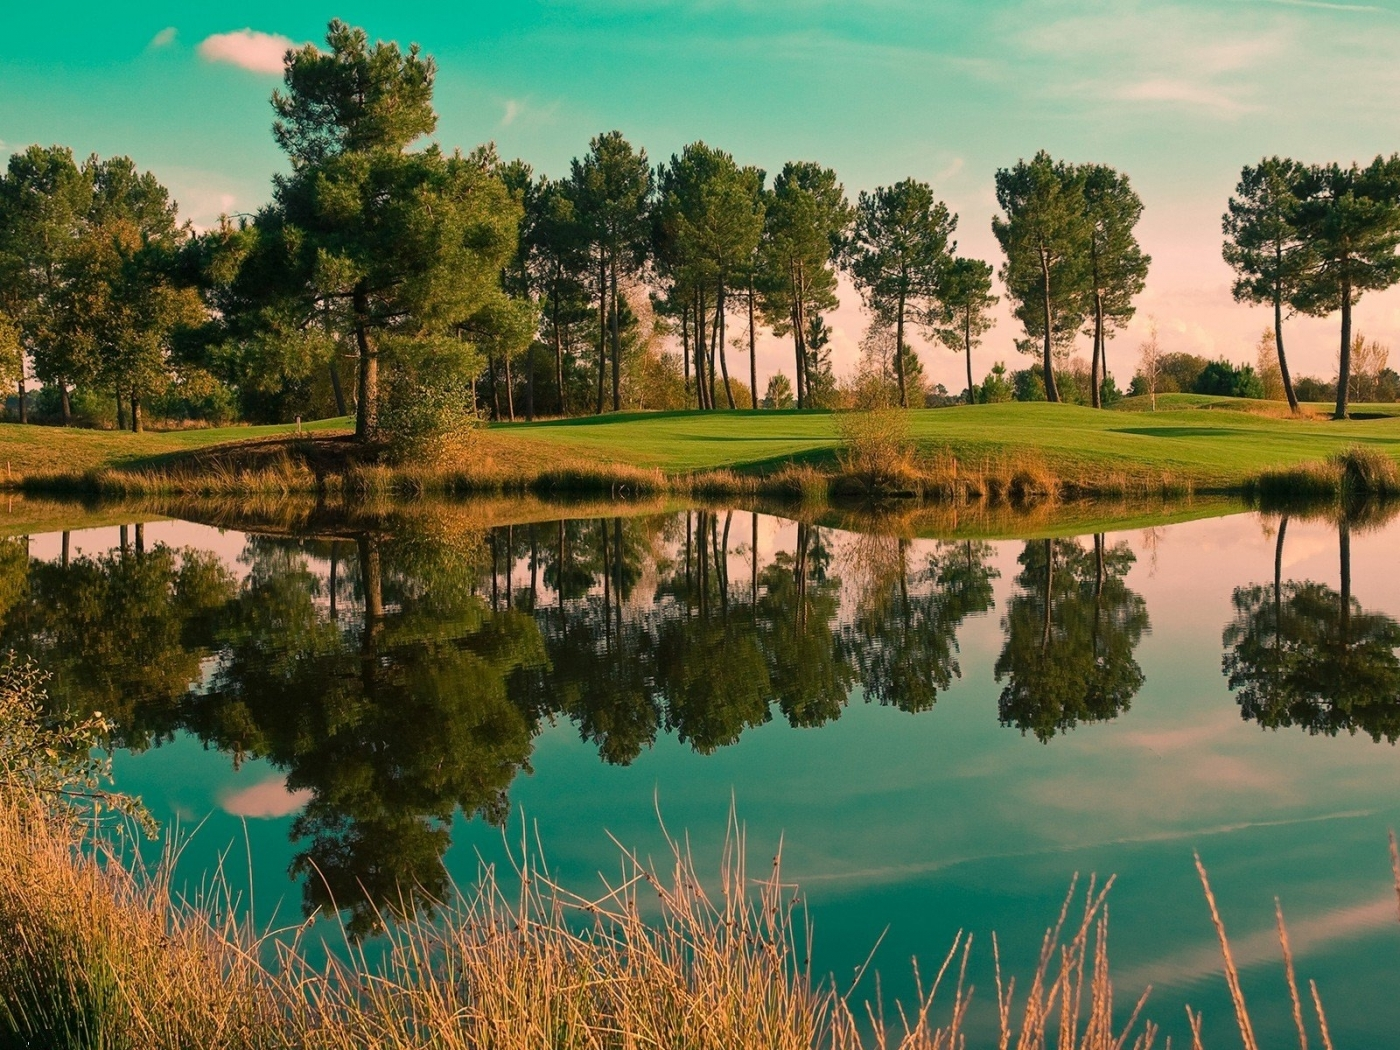 48316 download wallpaper Landscape, Nature, Trees, Lakes screensavers and pictures for free